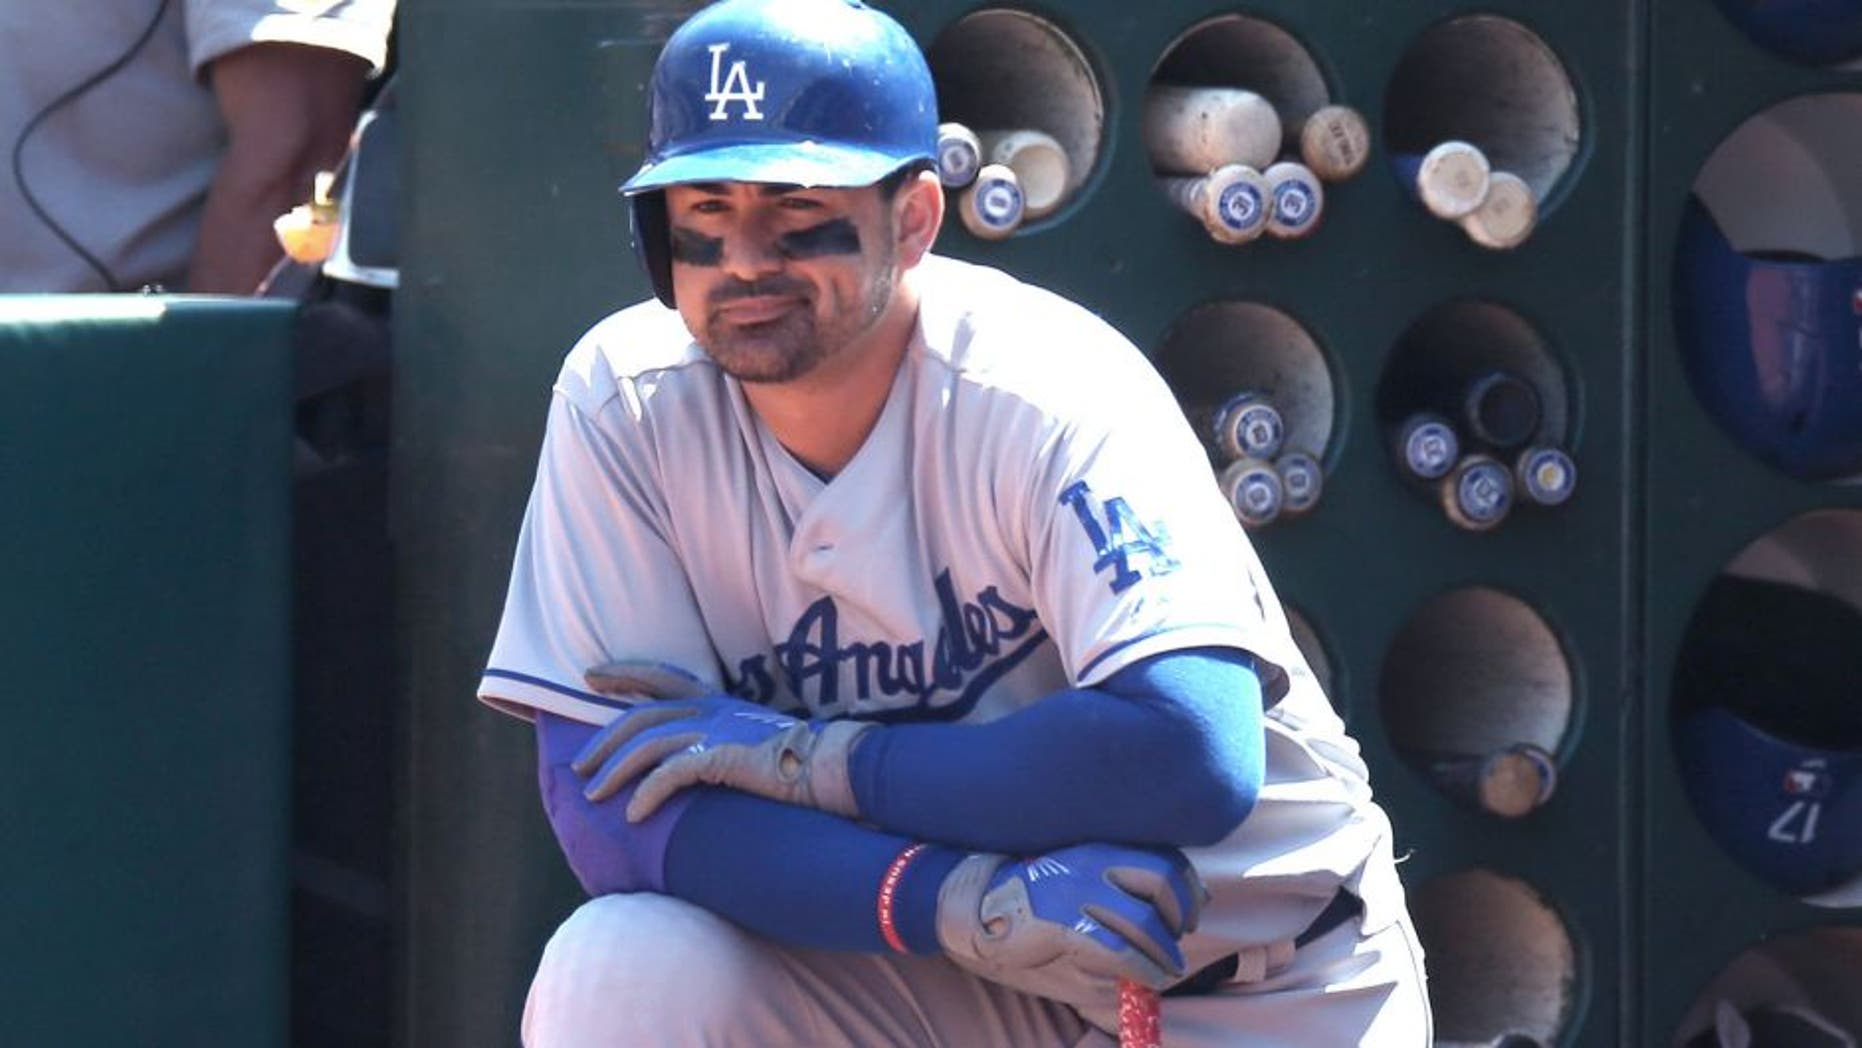 OAKLAND, CA - AUGUST 19: Adrian Gonzalez #23 of the Los Angeles Dodgers waits in the dugout for his next at bat against the Oakland Athletics during the game at O.co Coliseum on Wednesday, August 19, 2015 in Oakland, California. (Photo by Brad Mangin/MLB Photos via Getty Images)